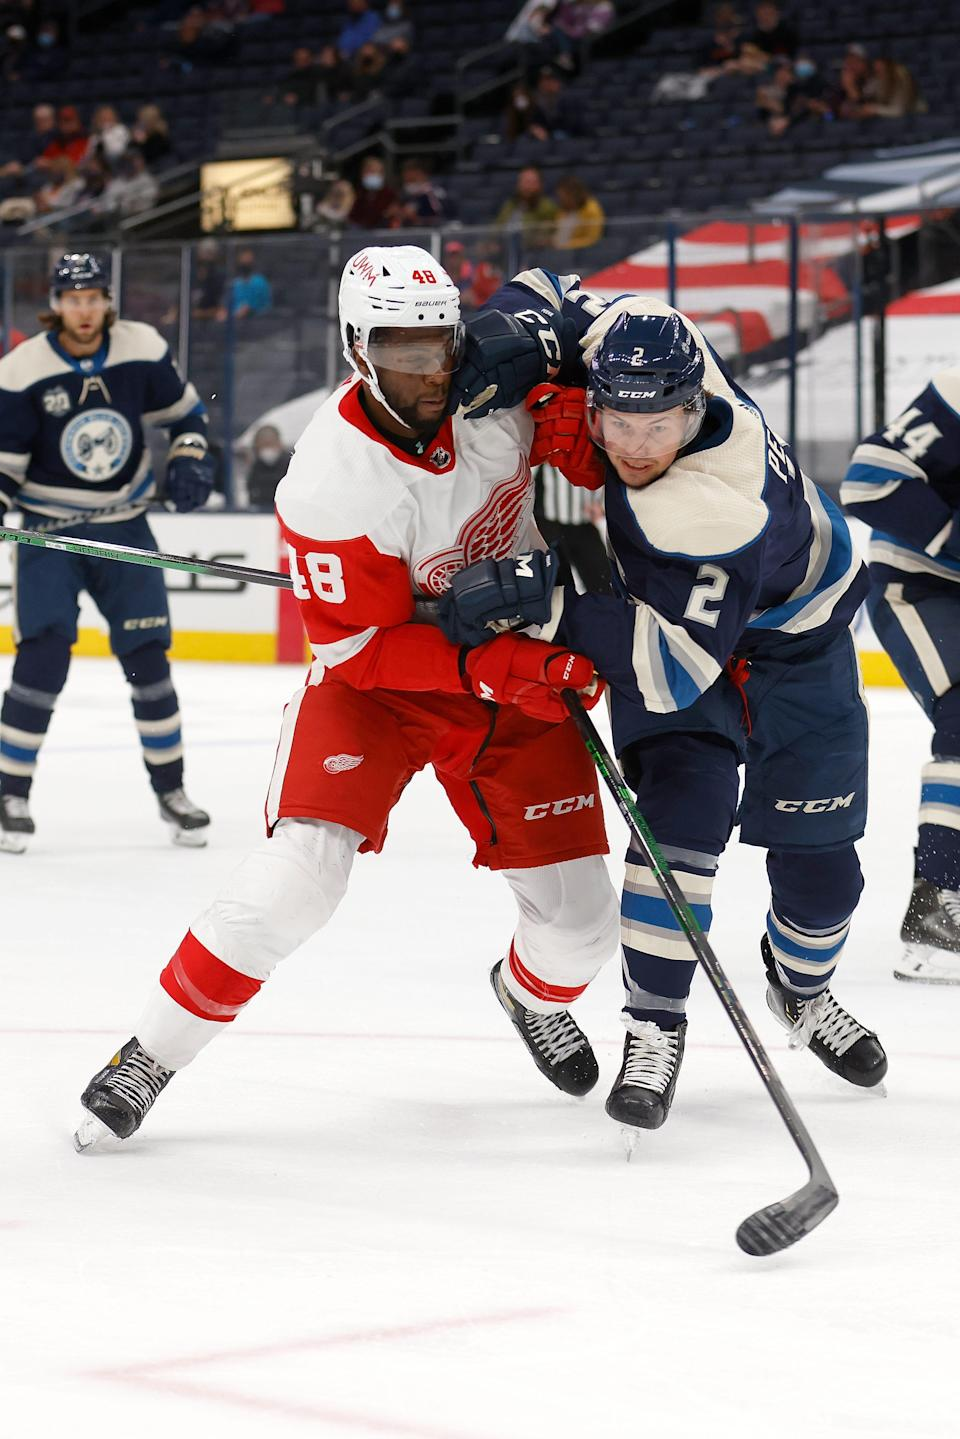 Givani Smith #48 of the Detroit Red Wings and Andrew Peeke #2 of the Columbus Blue Jackets skate after the puck during the first period of the game at Nationwide Arena on May 7, 2021